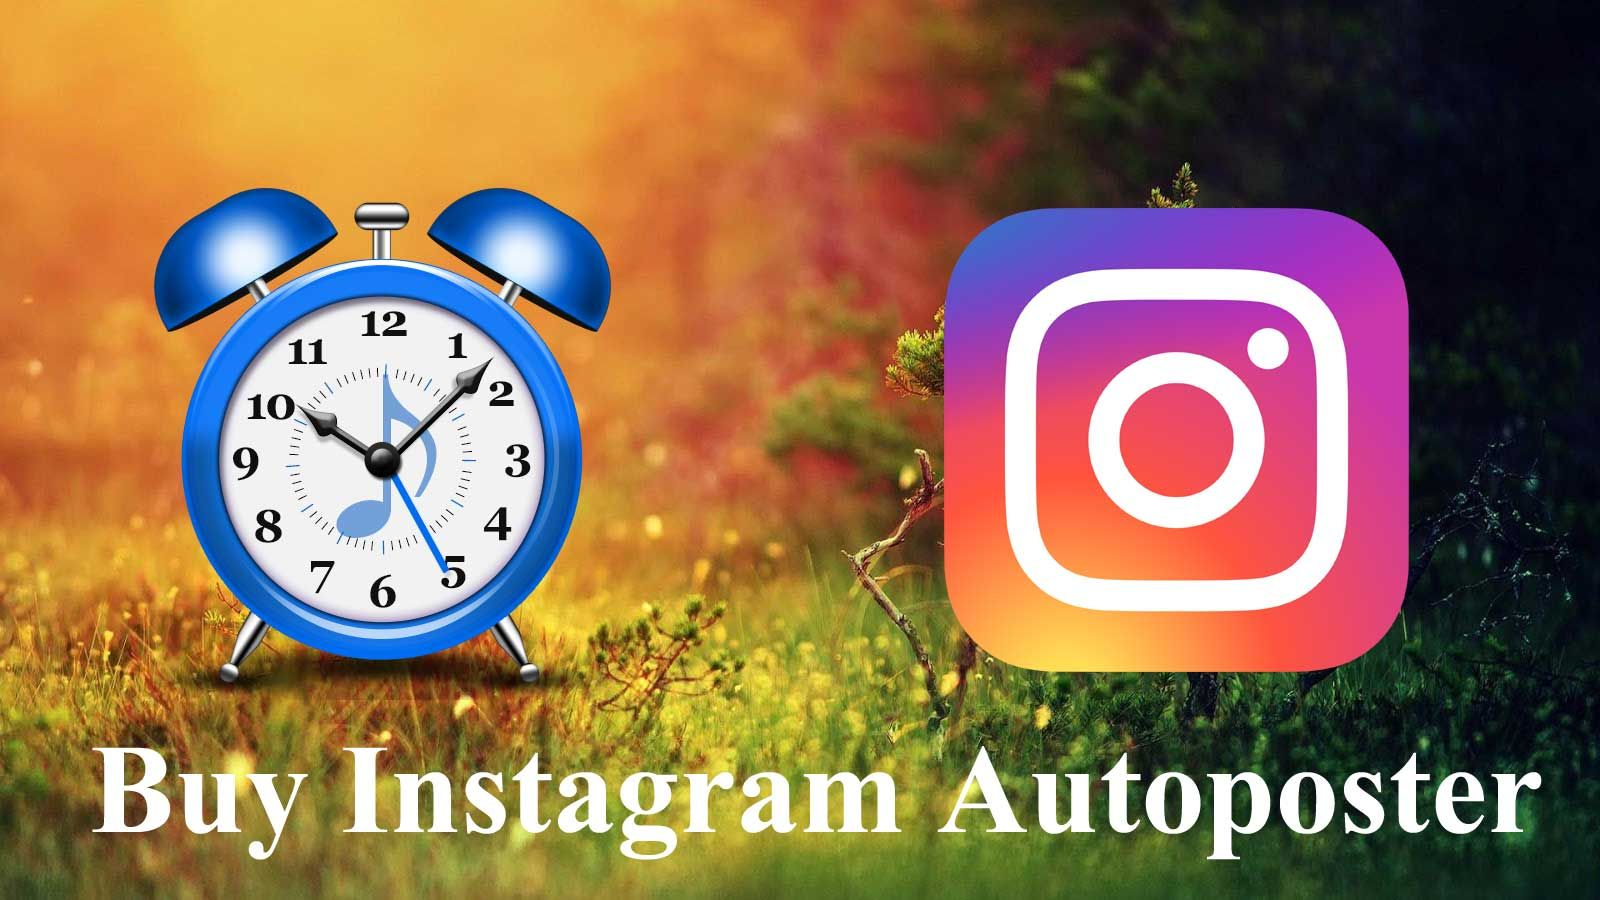 Auto Poster Is A Perfect Choice For Auto Posting Your Content To Famous Social Media Platforms Like Facebook Business Pages Social Media Social Media Platforms